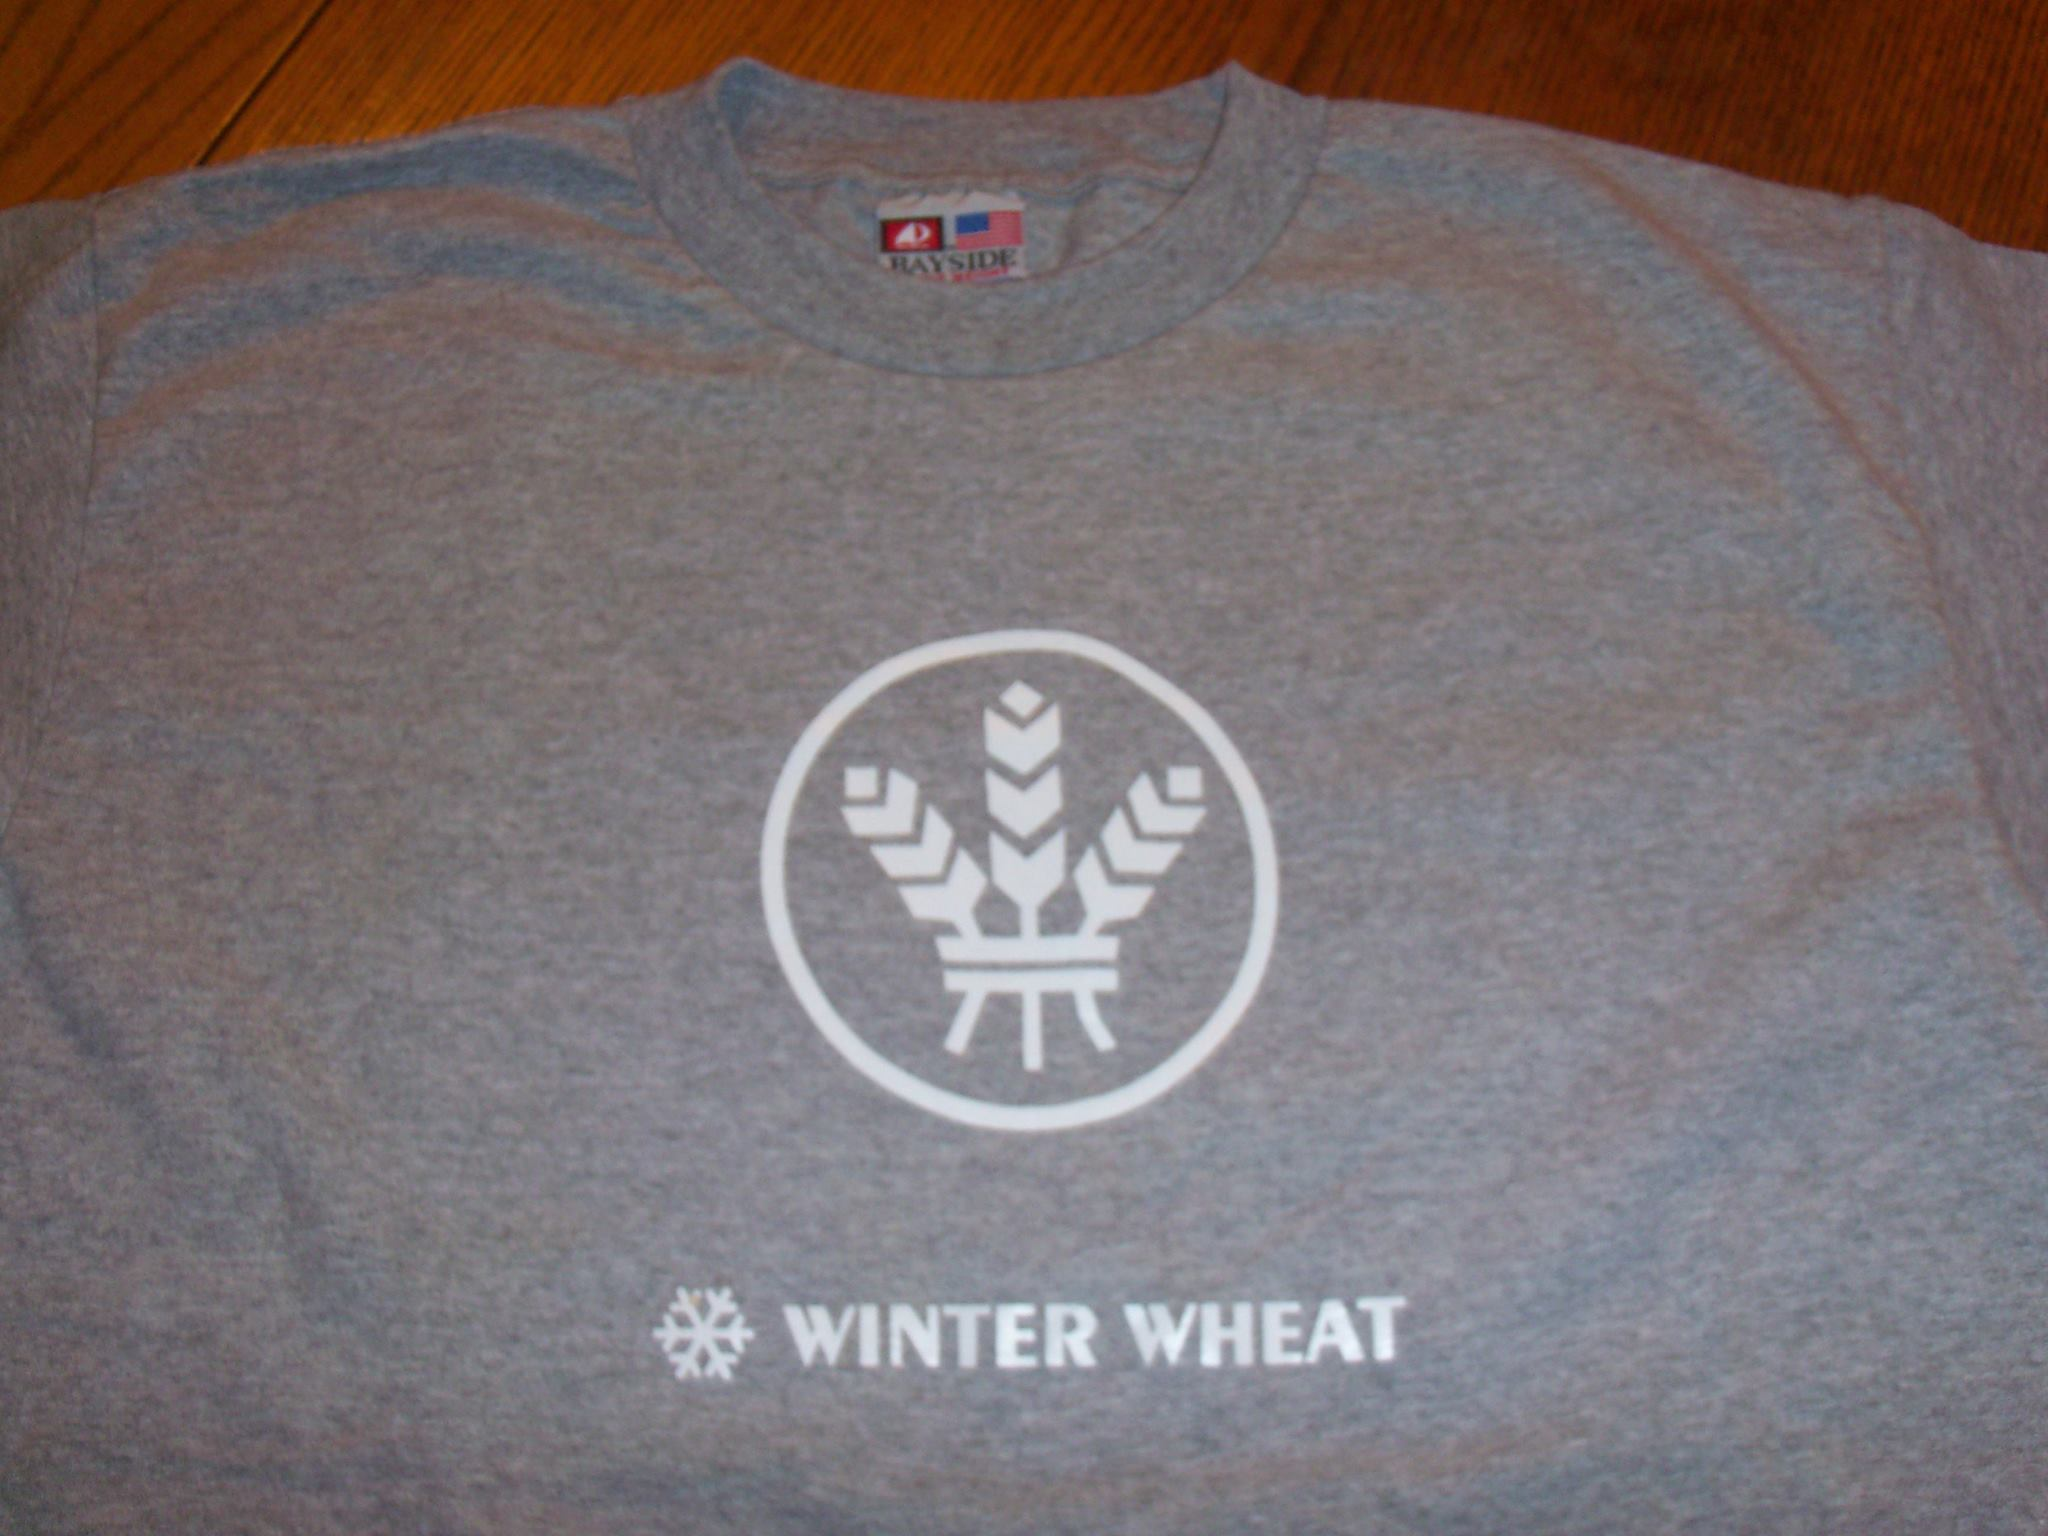 Winter Wheat T-shirt